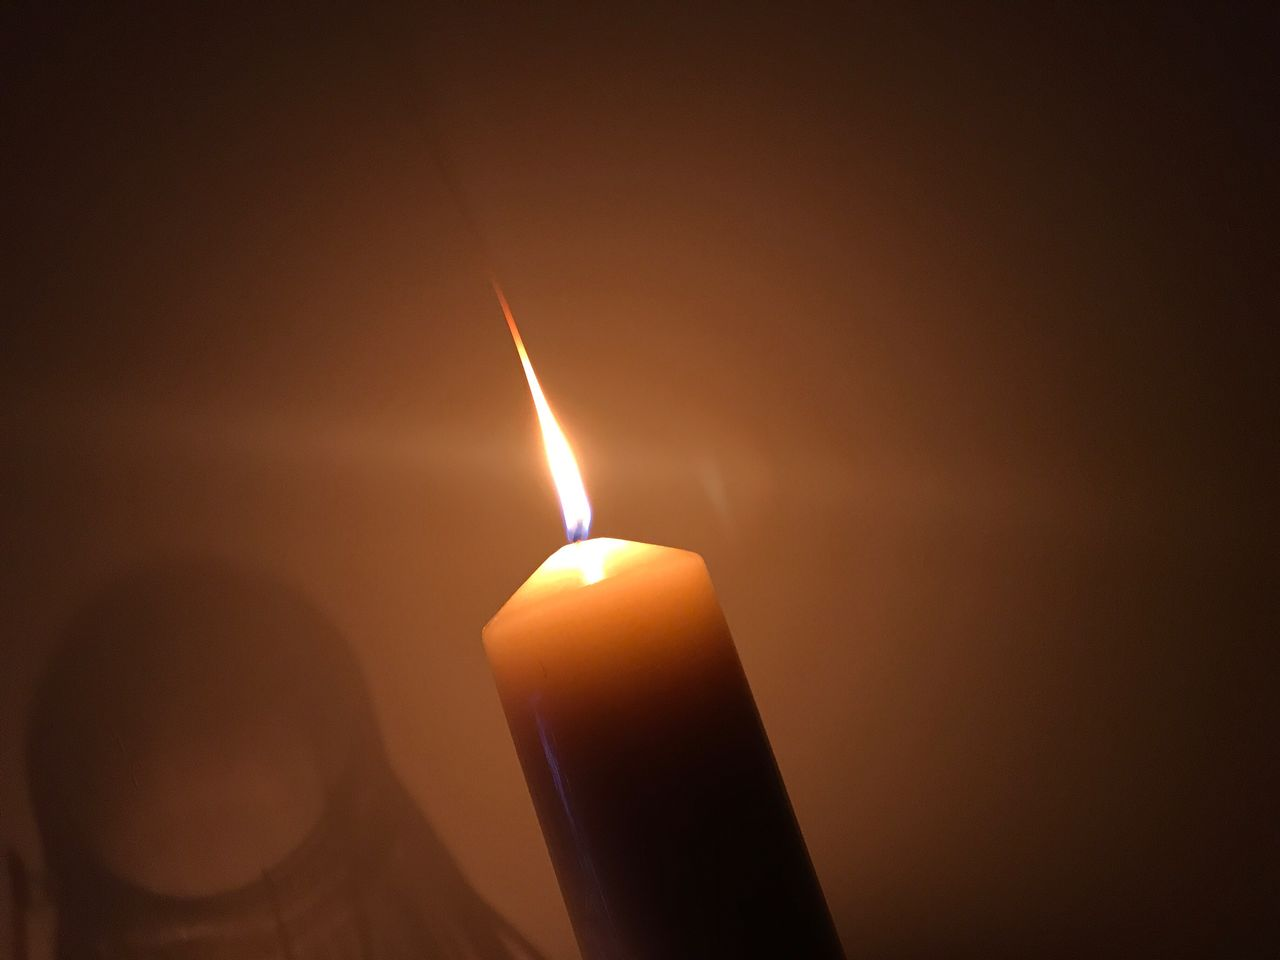 flame, candle, burning, glowing, heat - temperature, illuminated, lighting equipment, no people, close-up, indoors, night